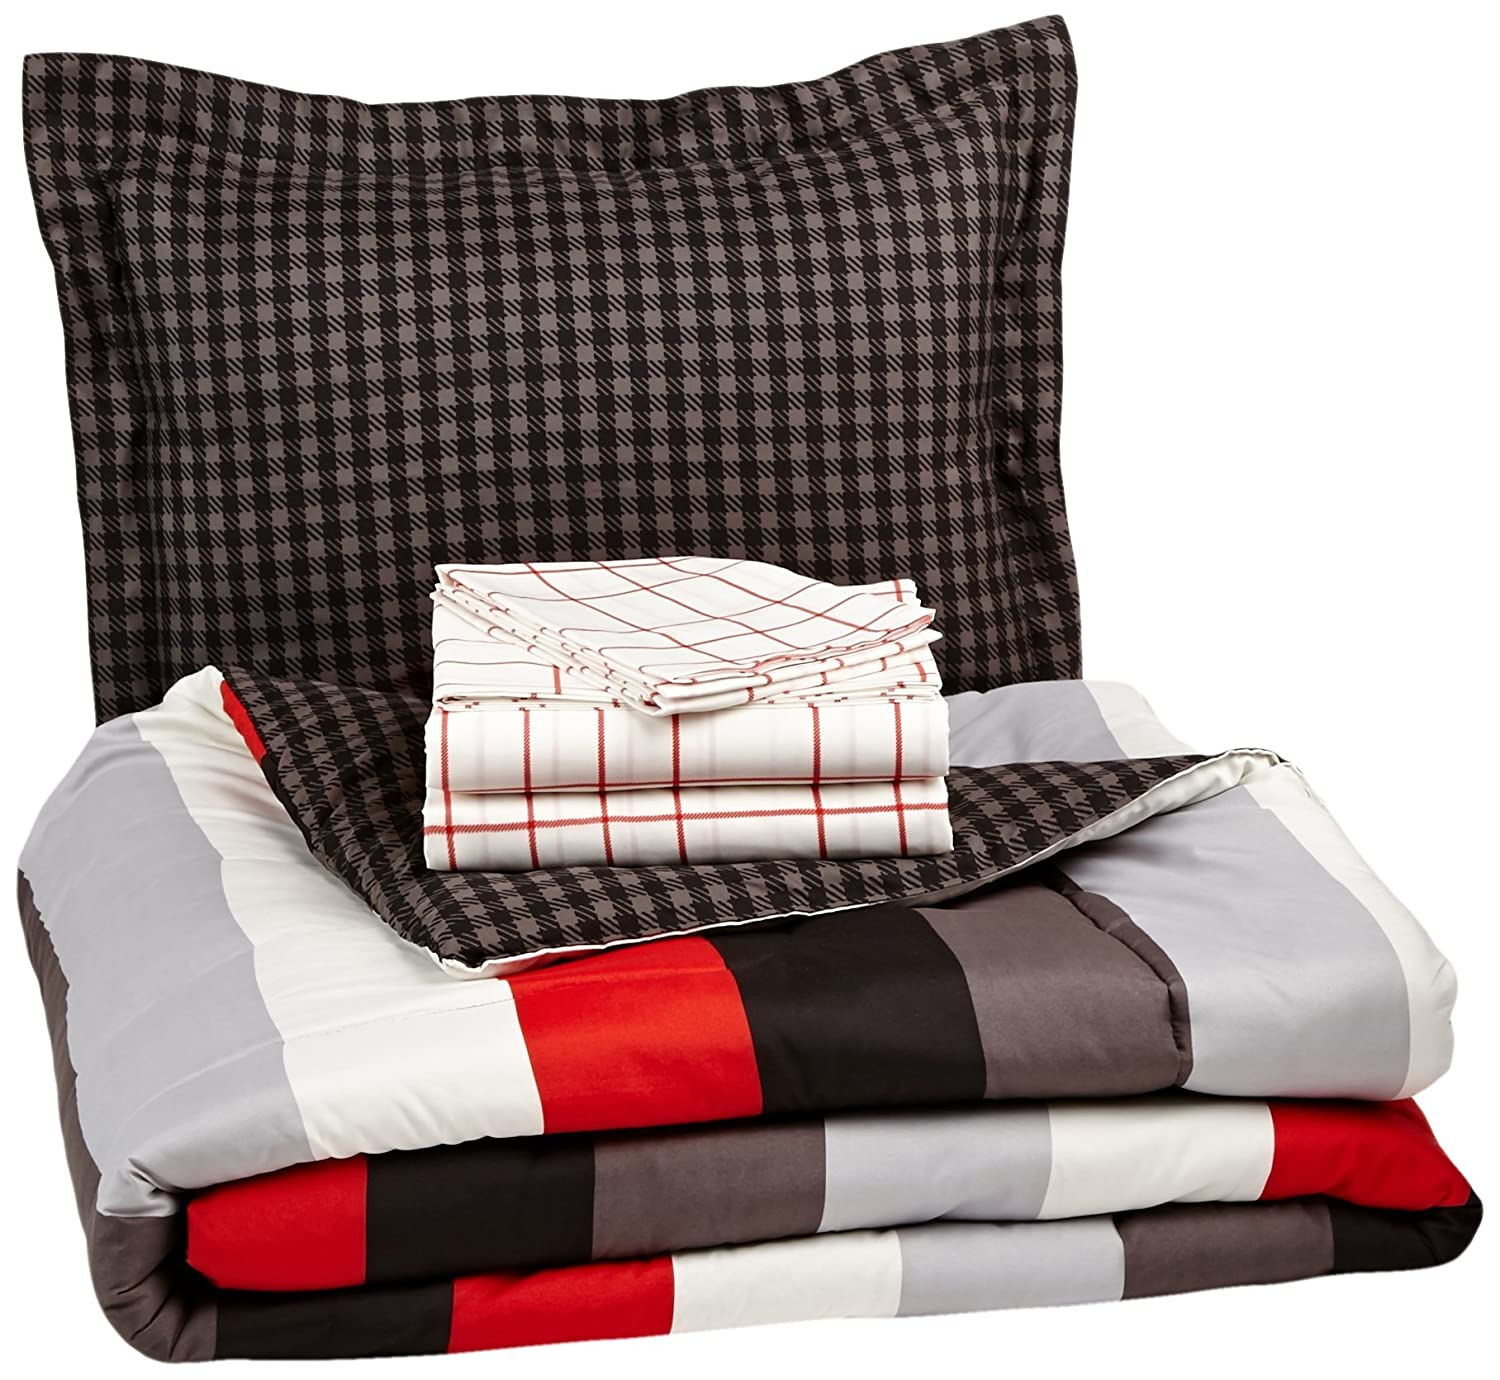 AmazonBasics 5-Piece Bed-In-A-Bag, Twin/Twin XL, Red Simple Stripe